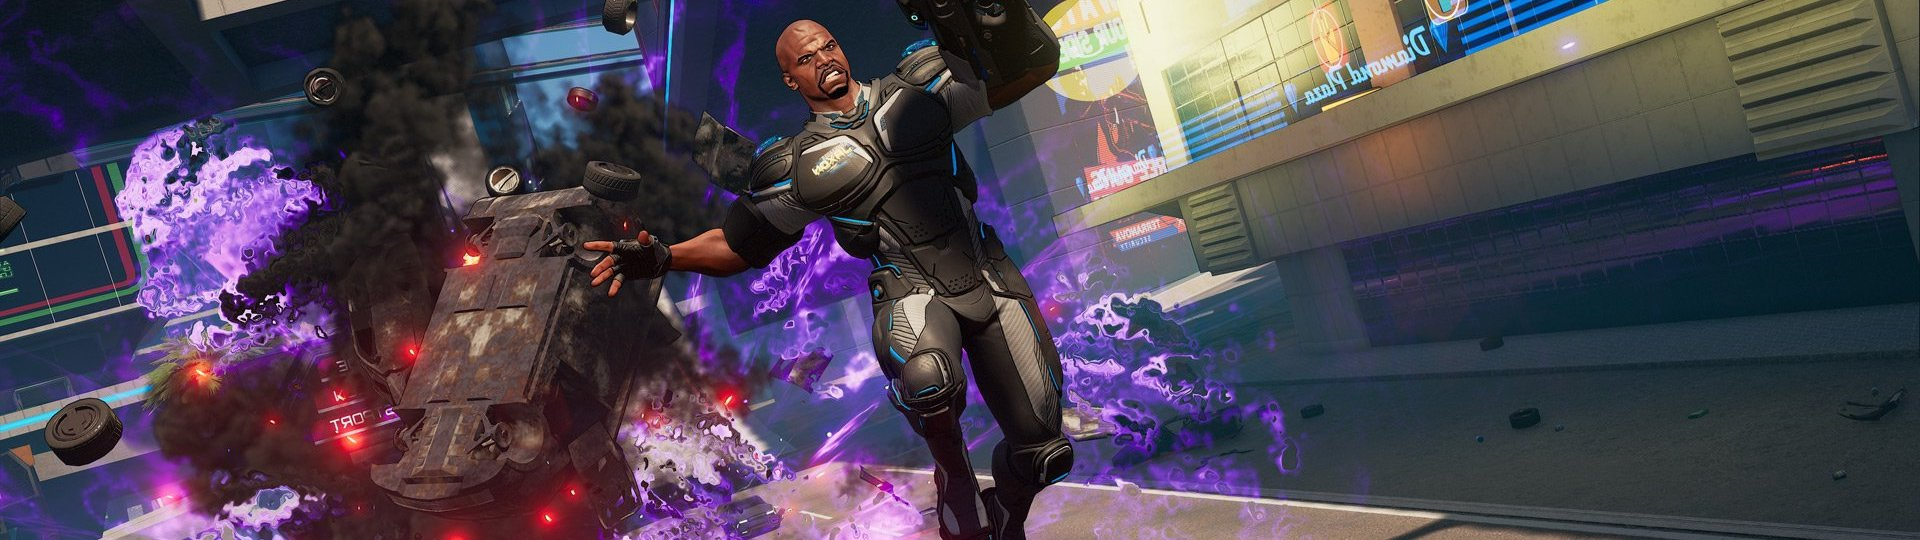 crackdown 3 game guides mission quest walkthrough